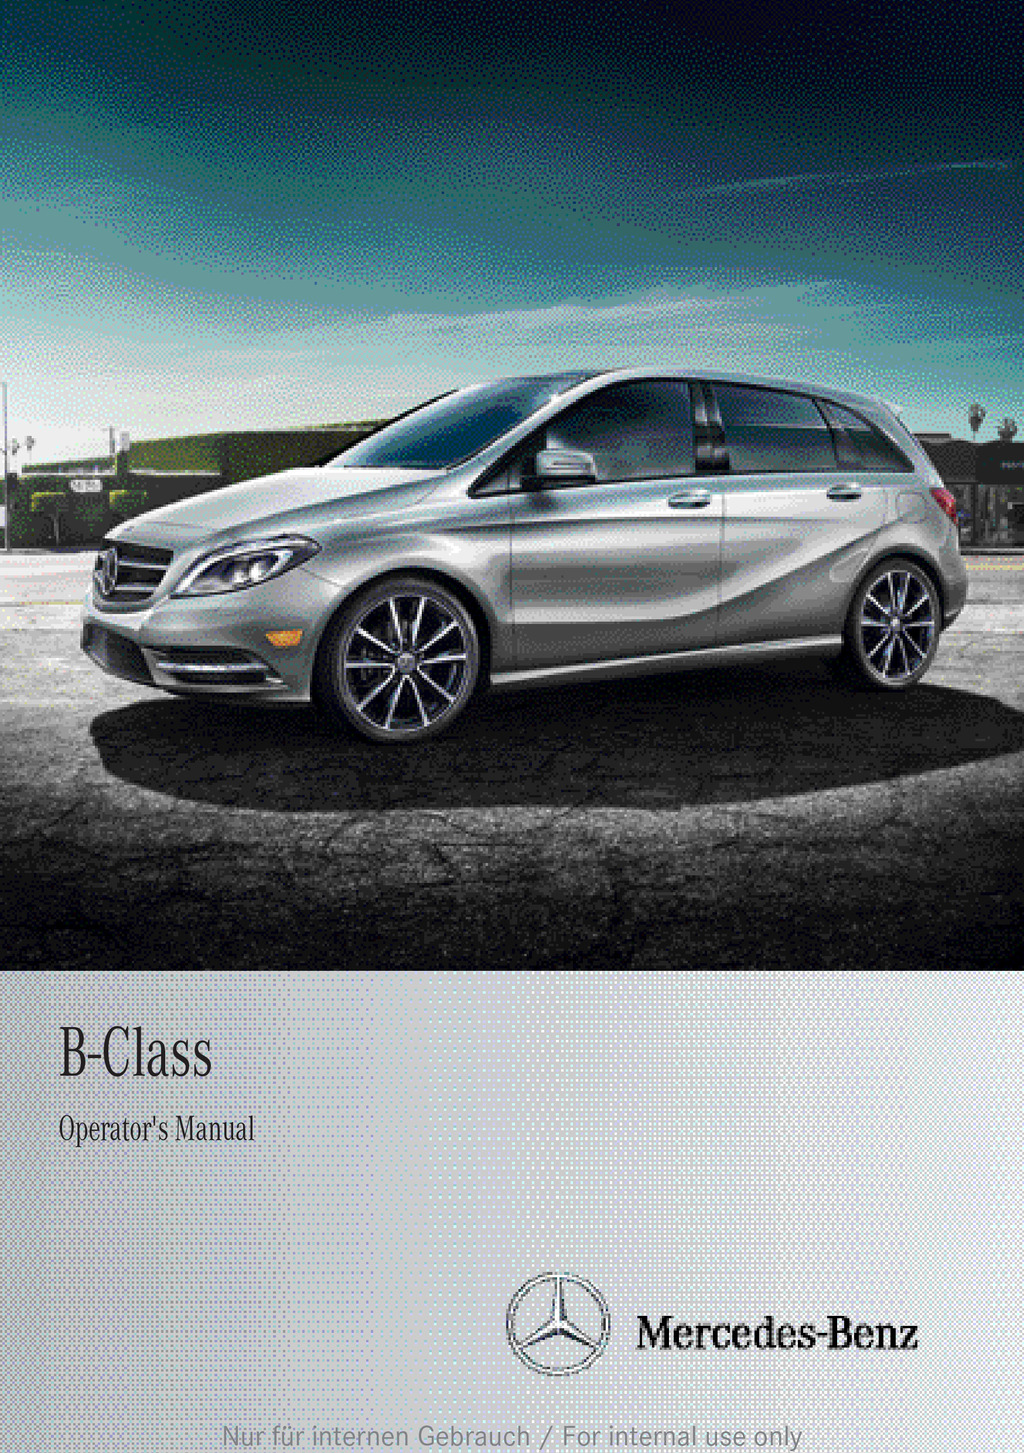 2012 Mercedes-Benz B Class owners manual